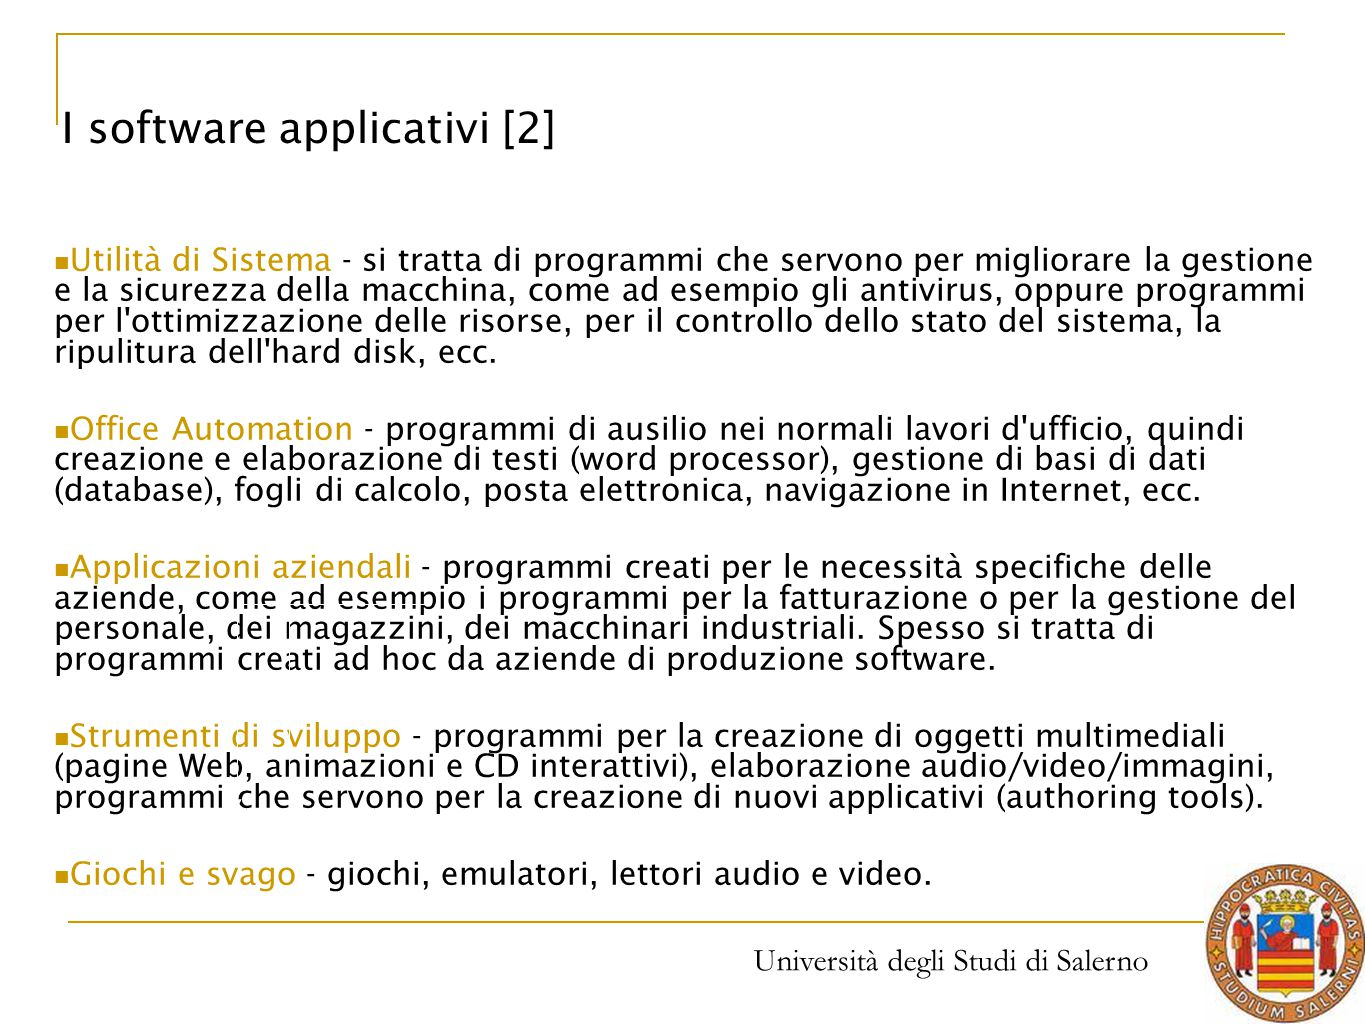 I software applicativi [2]